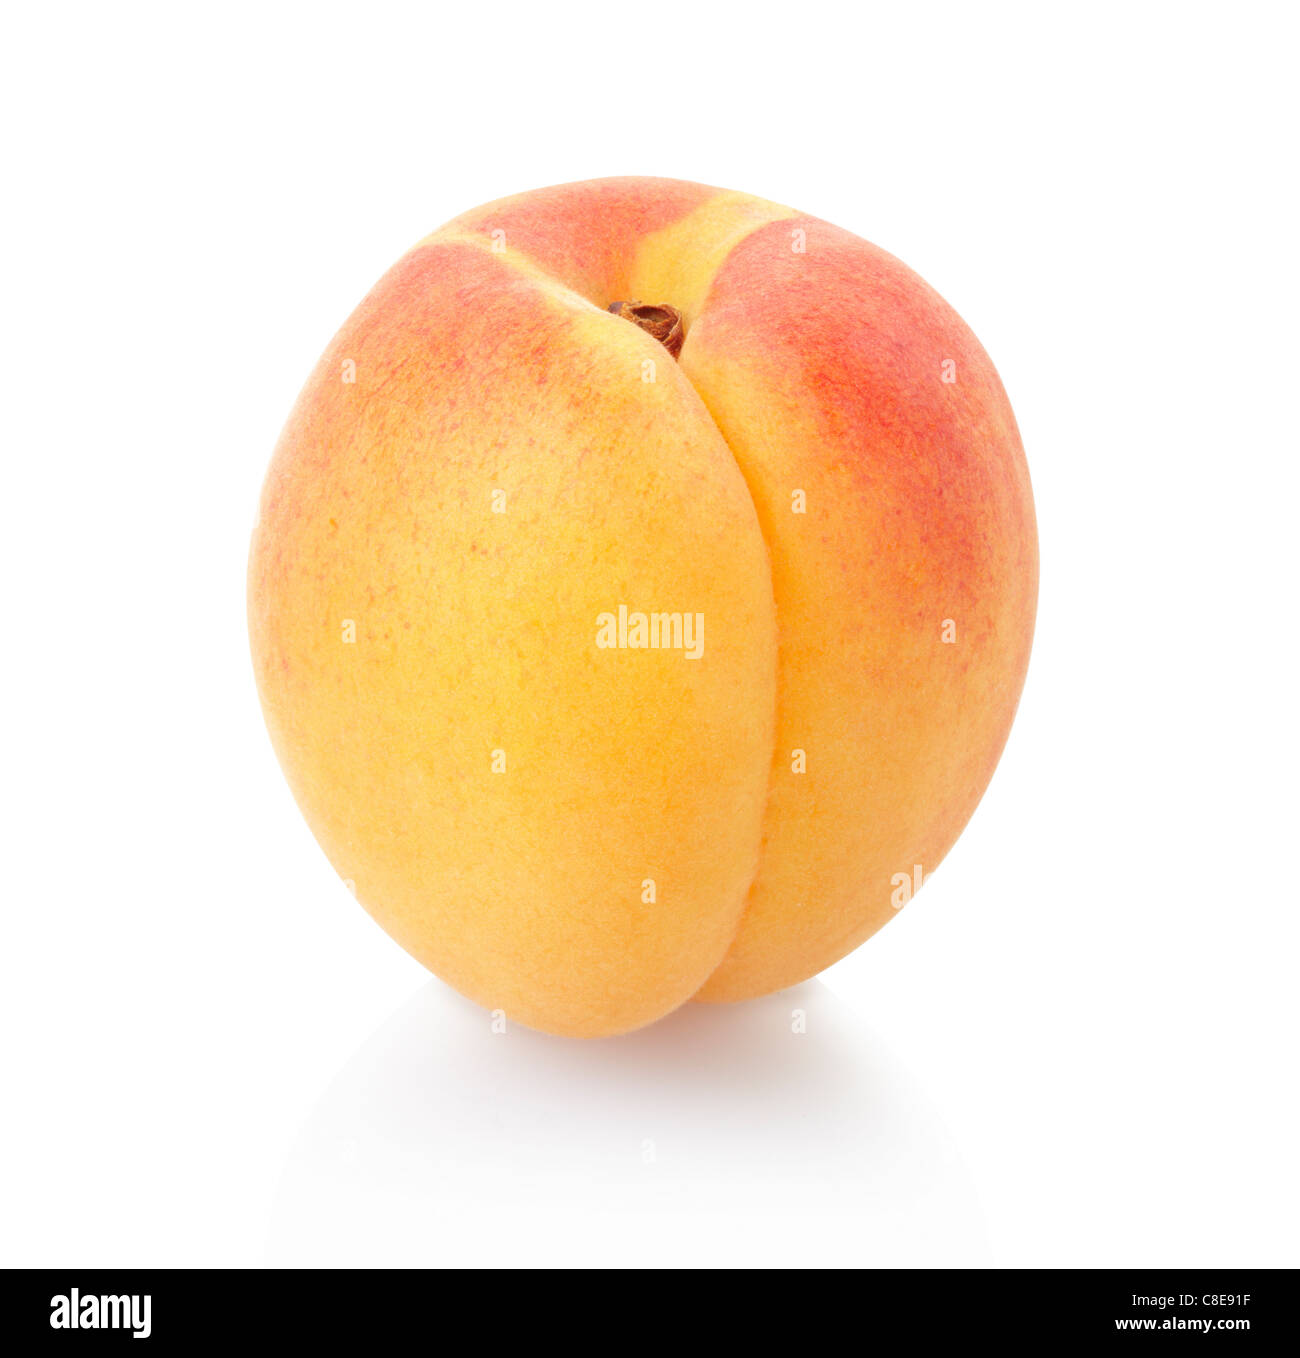 Apricot - Stock Image